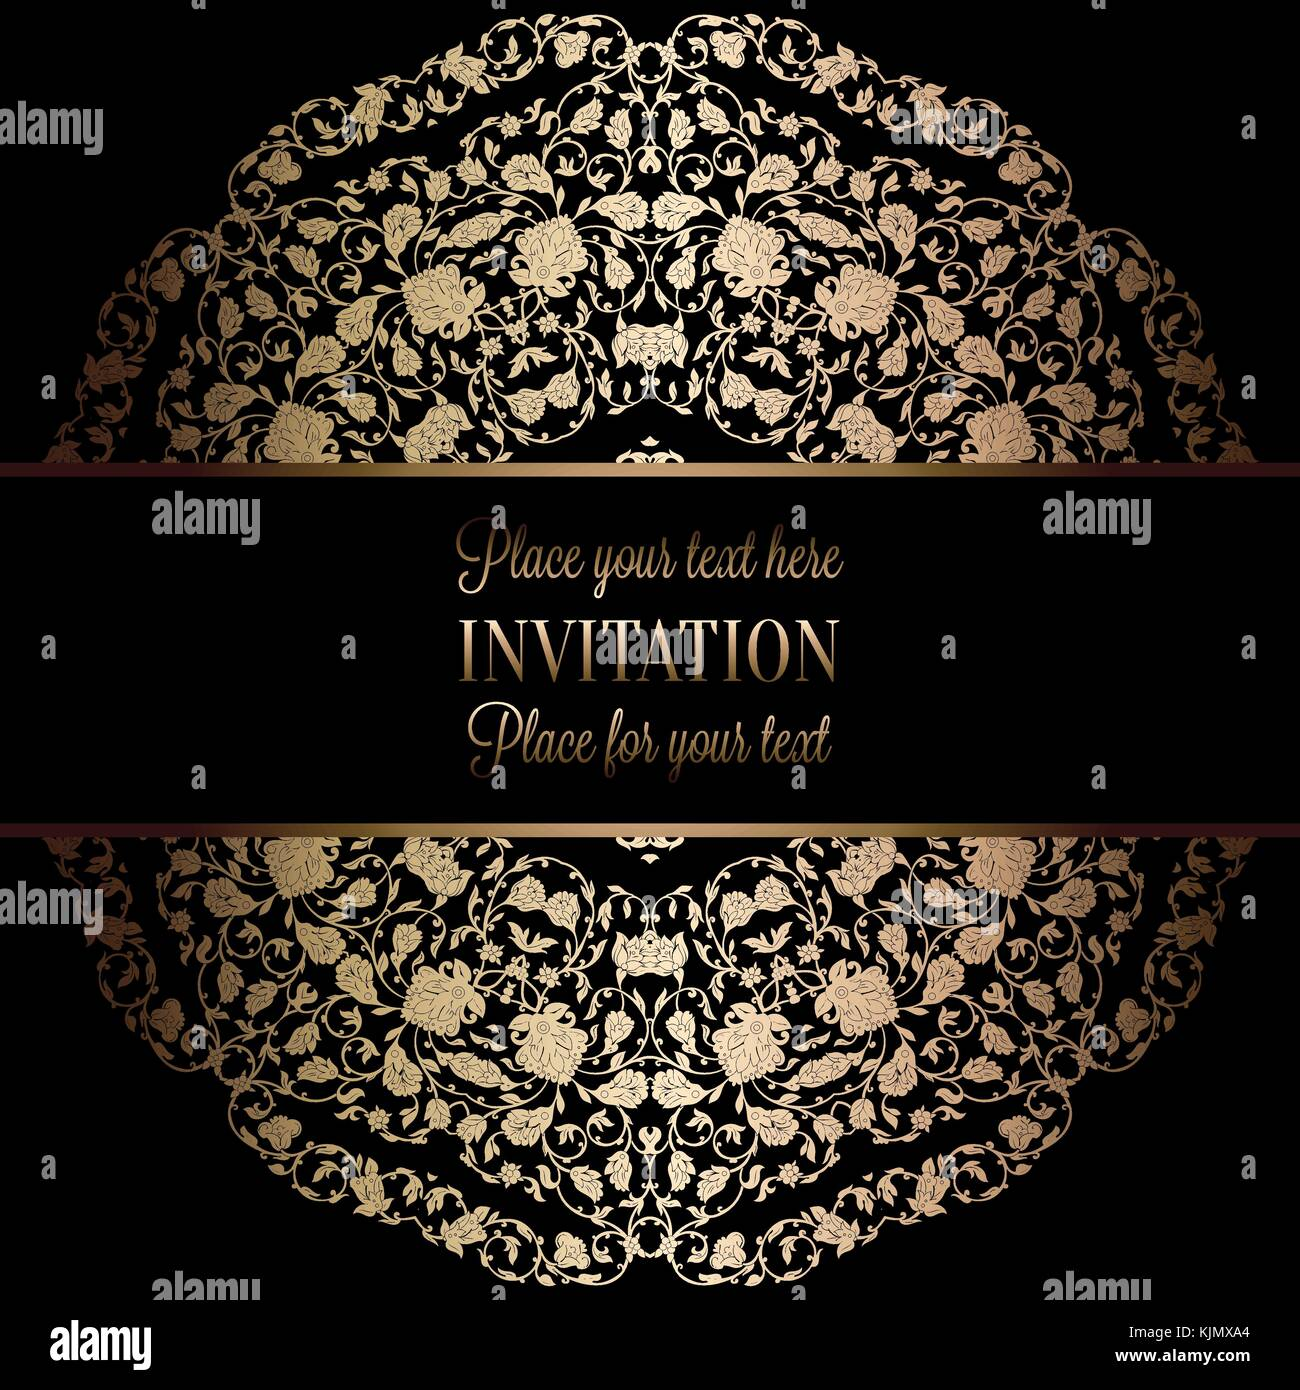 Vintage baroque Wedding Invitation template with damask background Stock  Vector Image & Art - Alamy